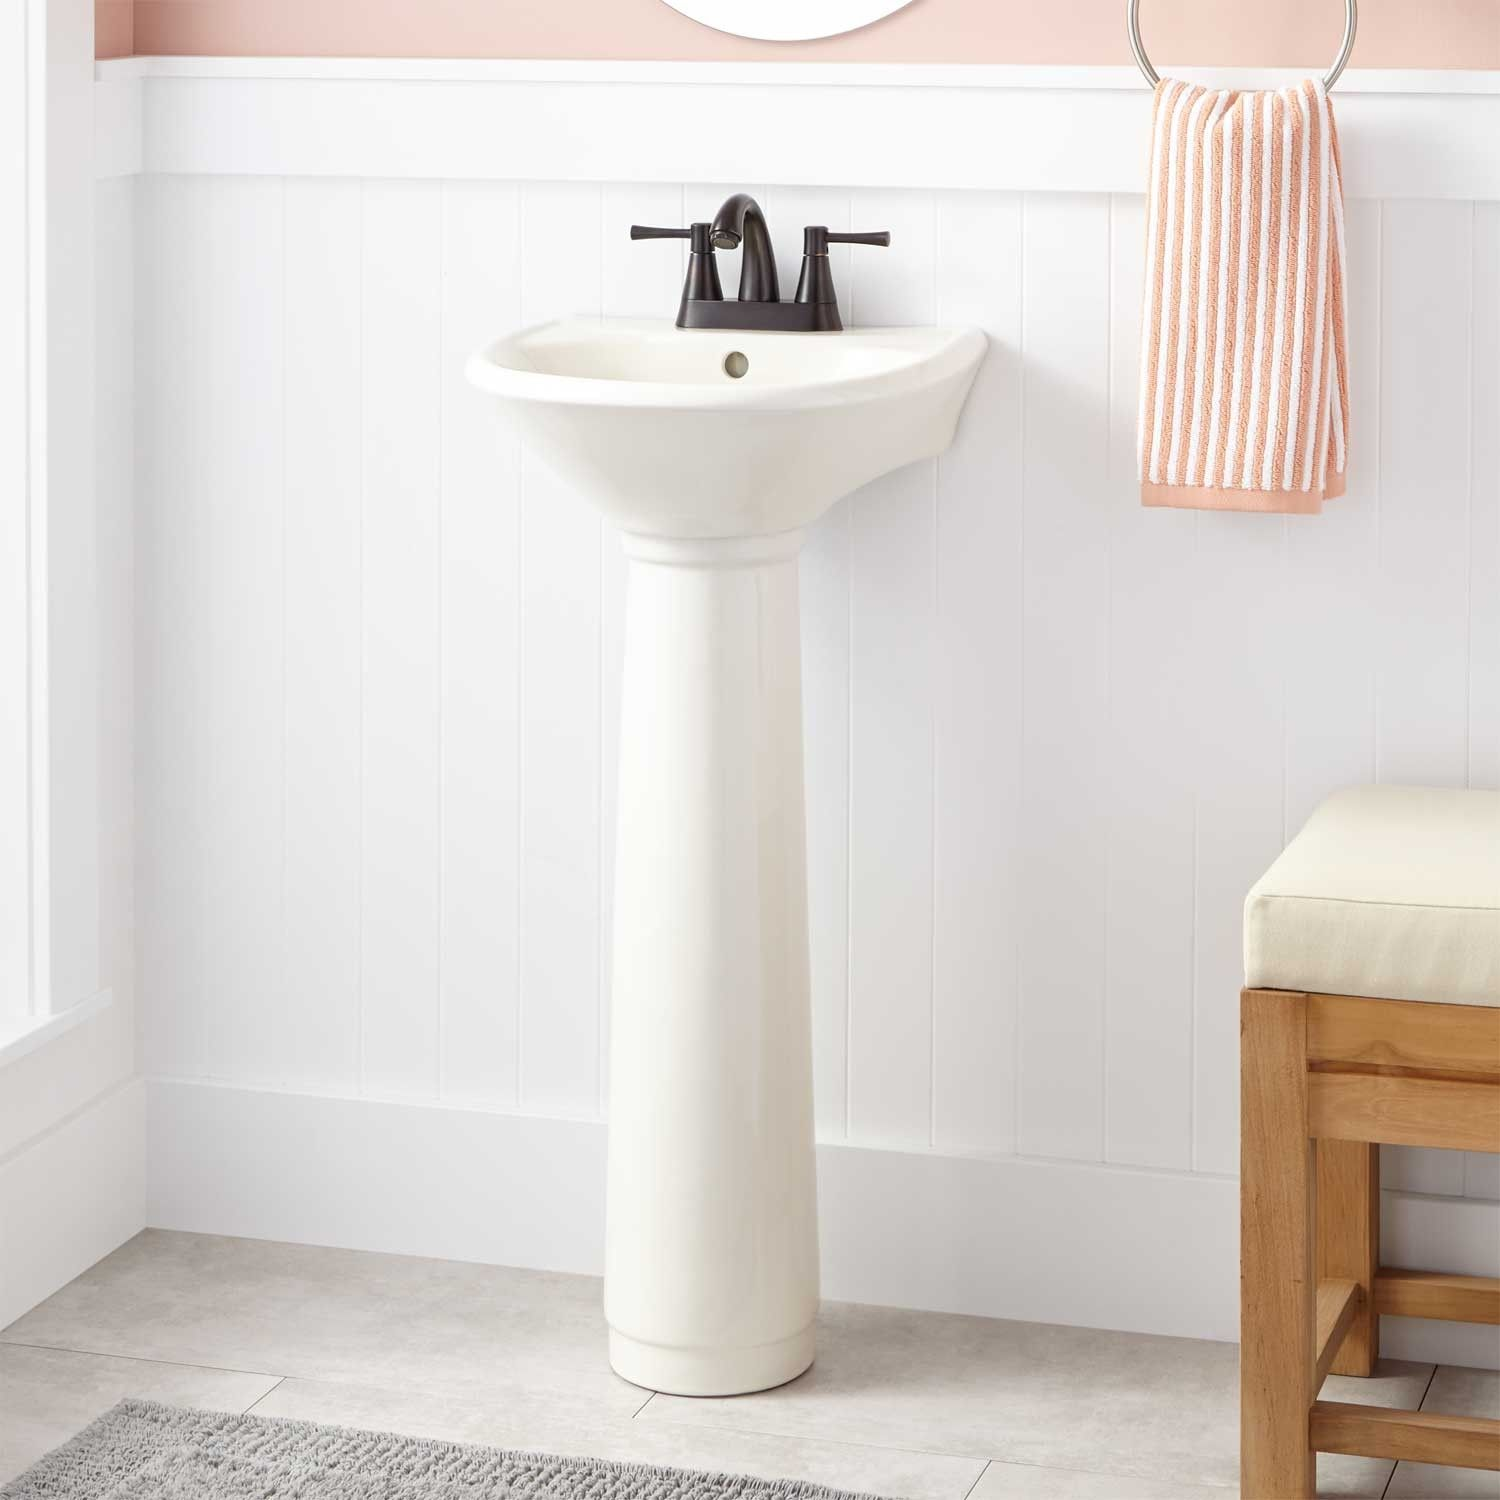 Farnham Mini Pedestal Sink Bathroom Small Bathroom Sinks Pedestal Sink Bathroom Pedestal Sink